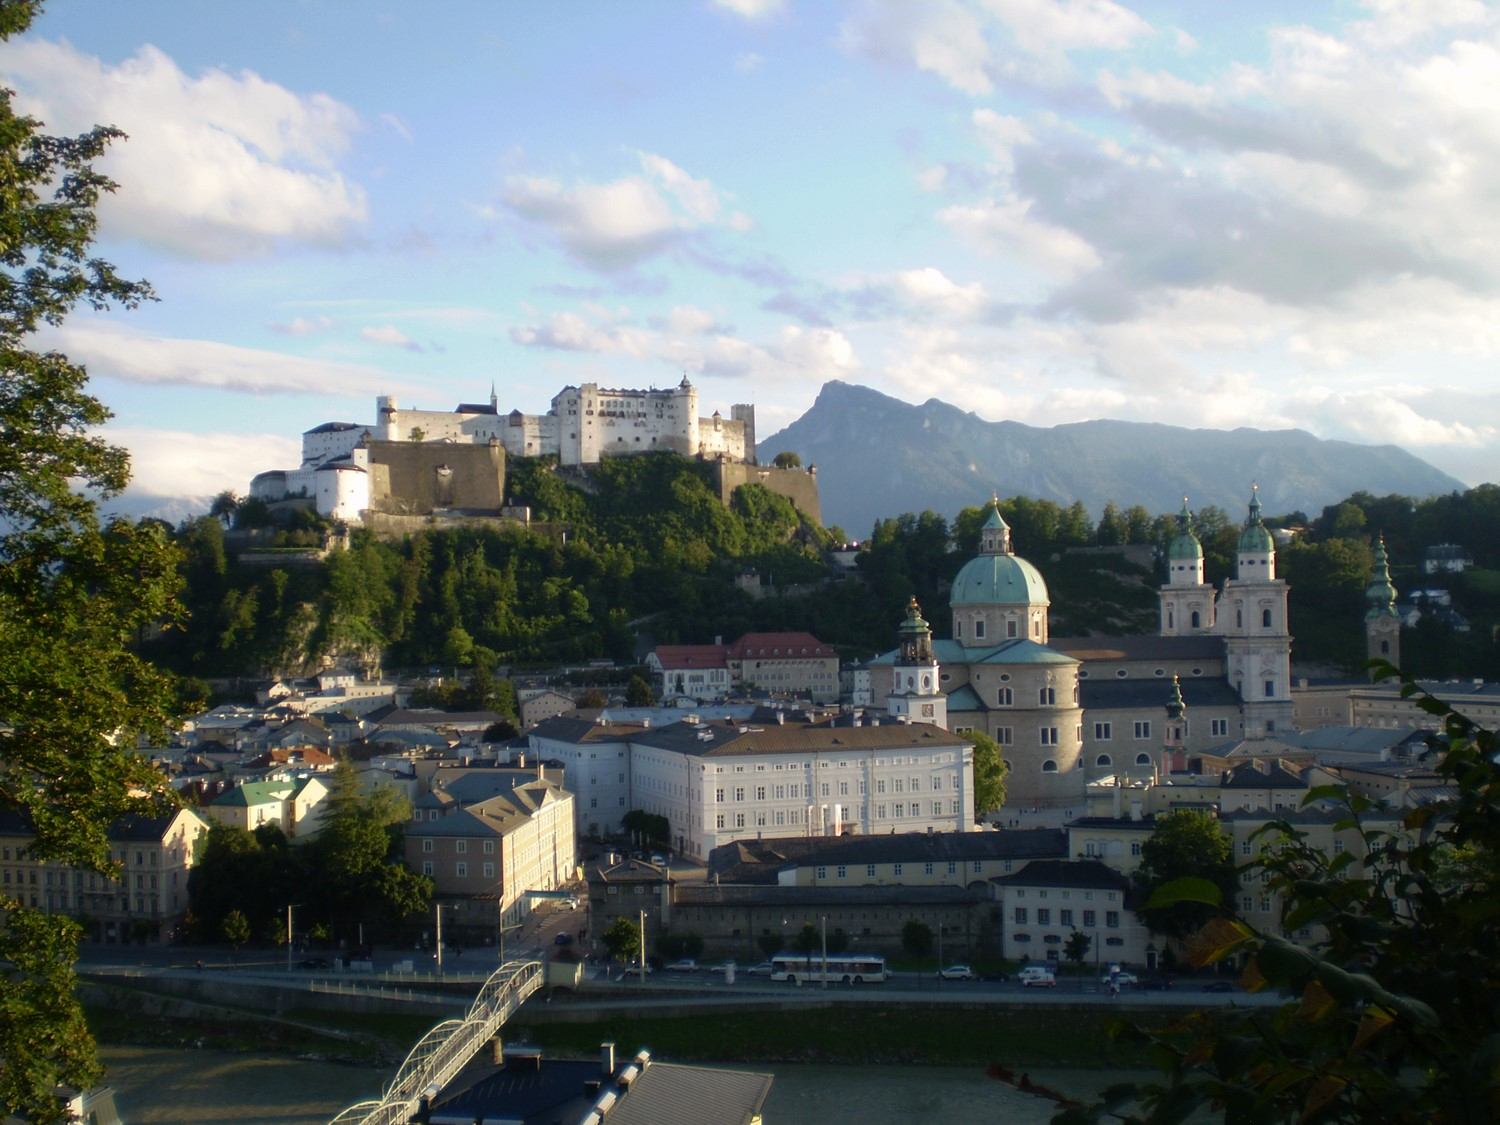 Festung-Hohensalzburg-An_Irishman-on-tour